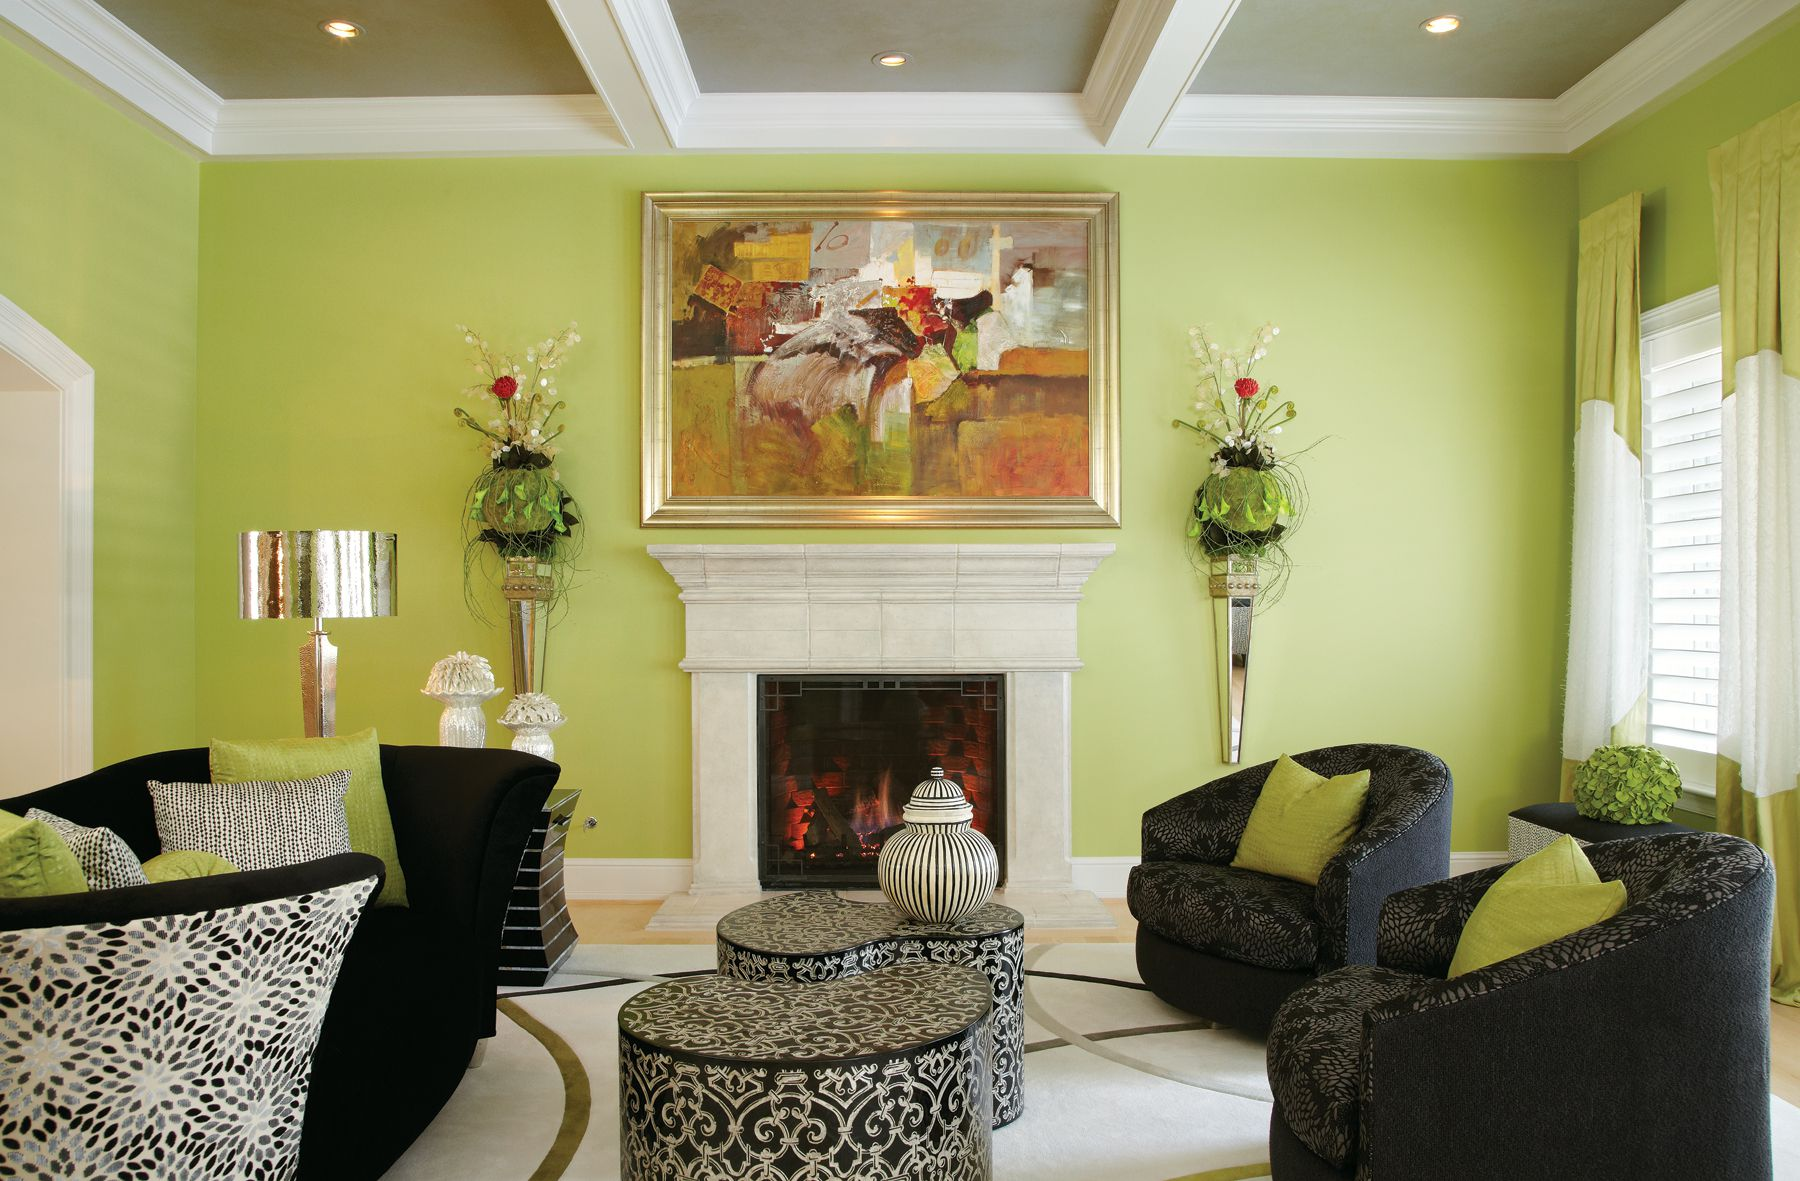 Pleasing Wall Paint Color For Green Living Room With Black Furniture